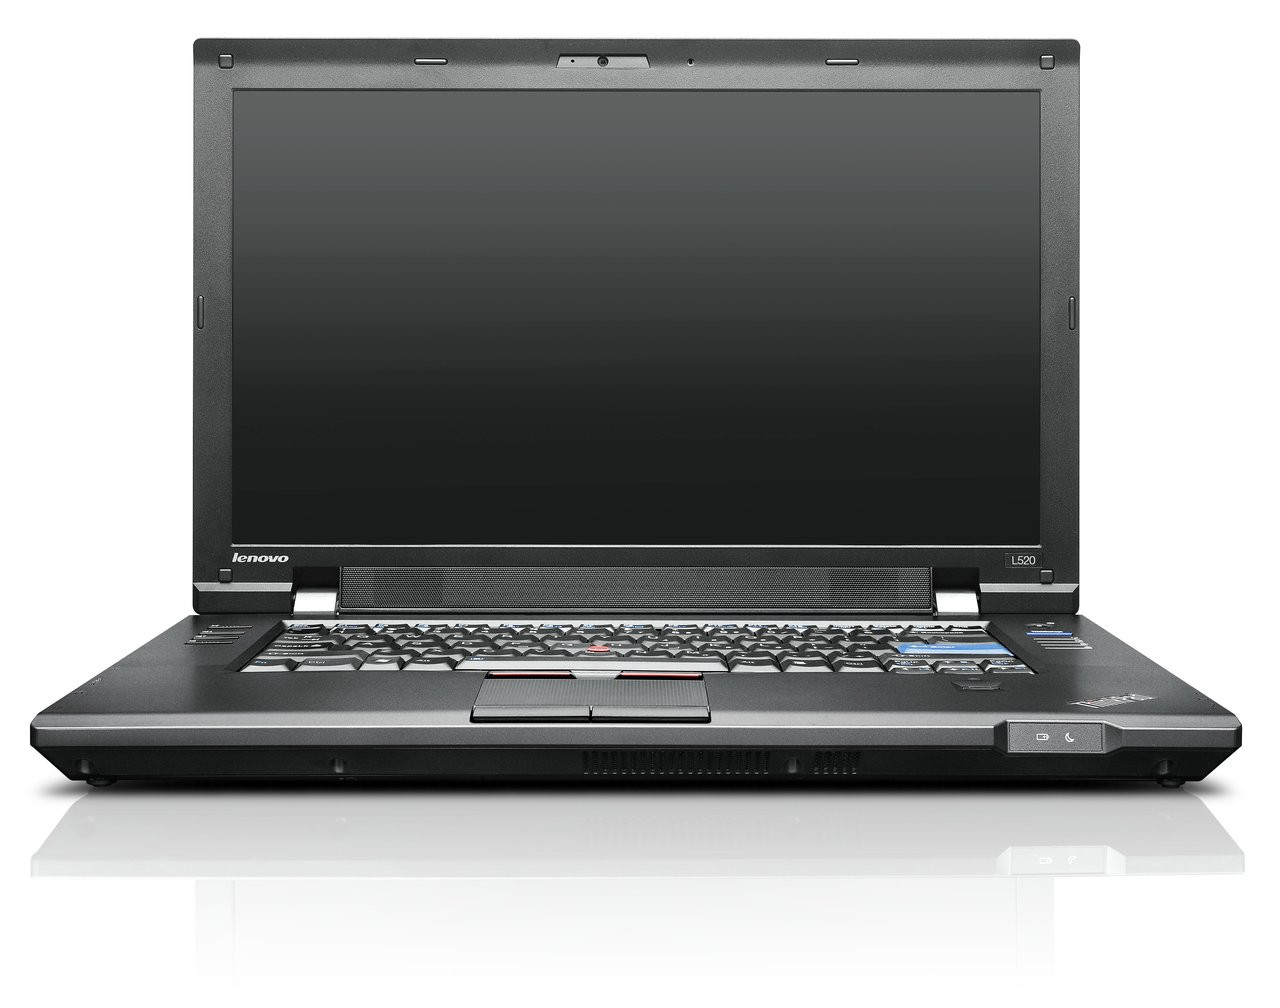 Refurbished Lenovo Thinkpad L520 - Core i5 Laptop